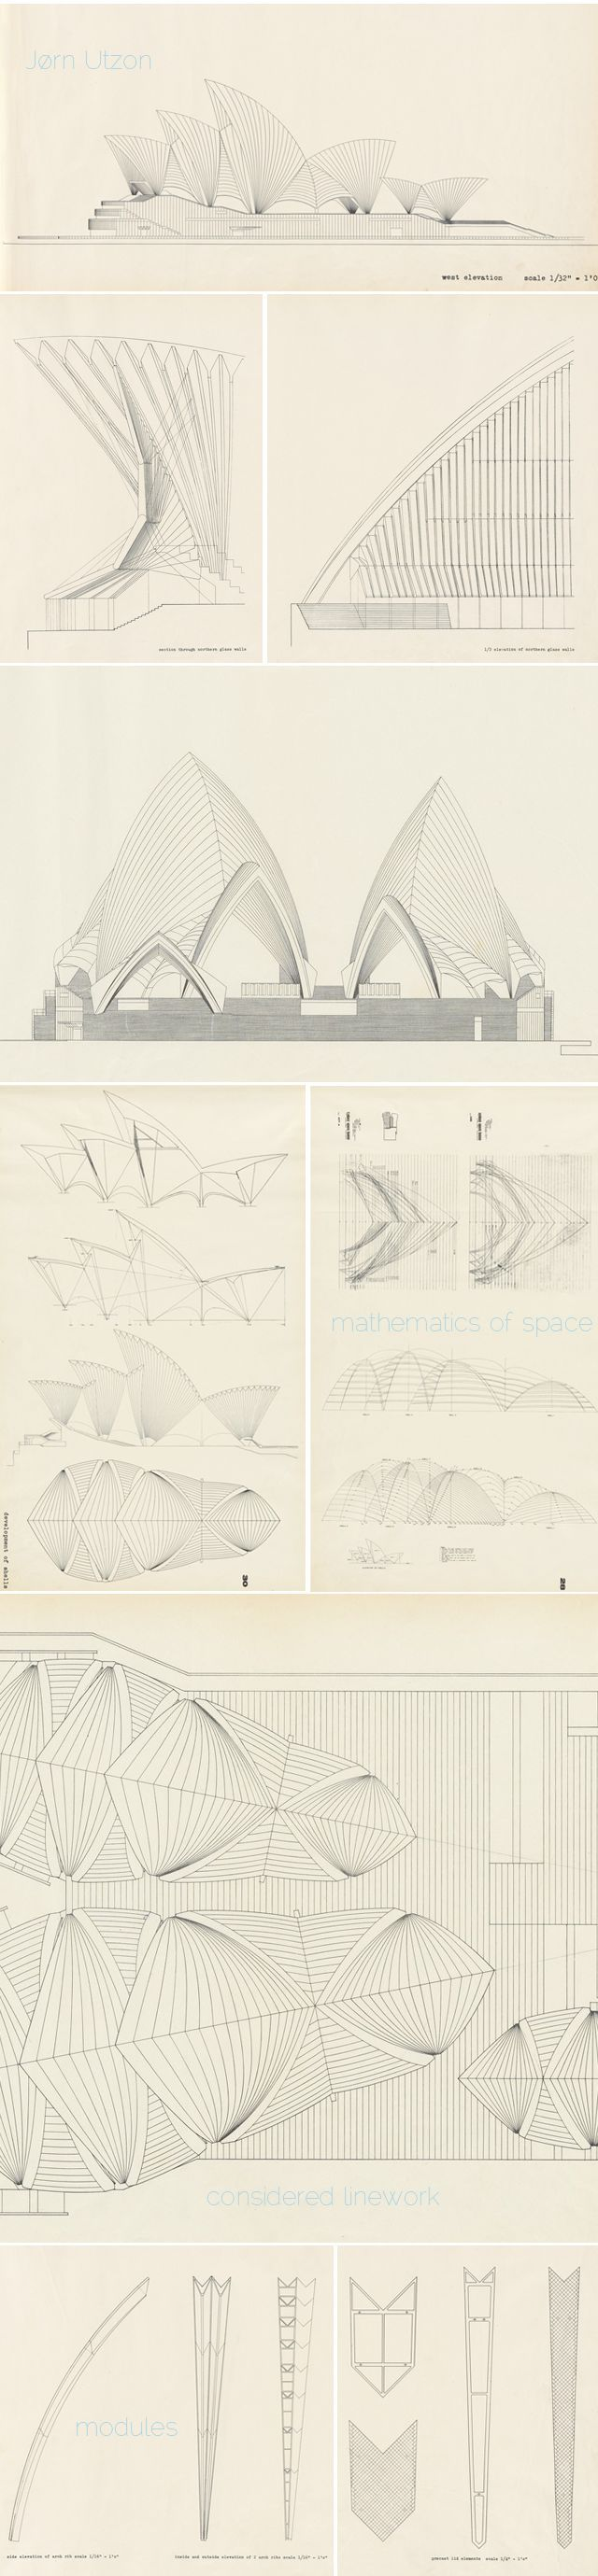 25 best ideas about jorn utzon on pinterest housing for Who draws house plans near me